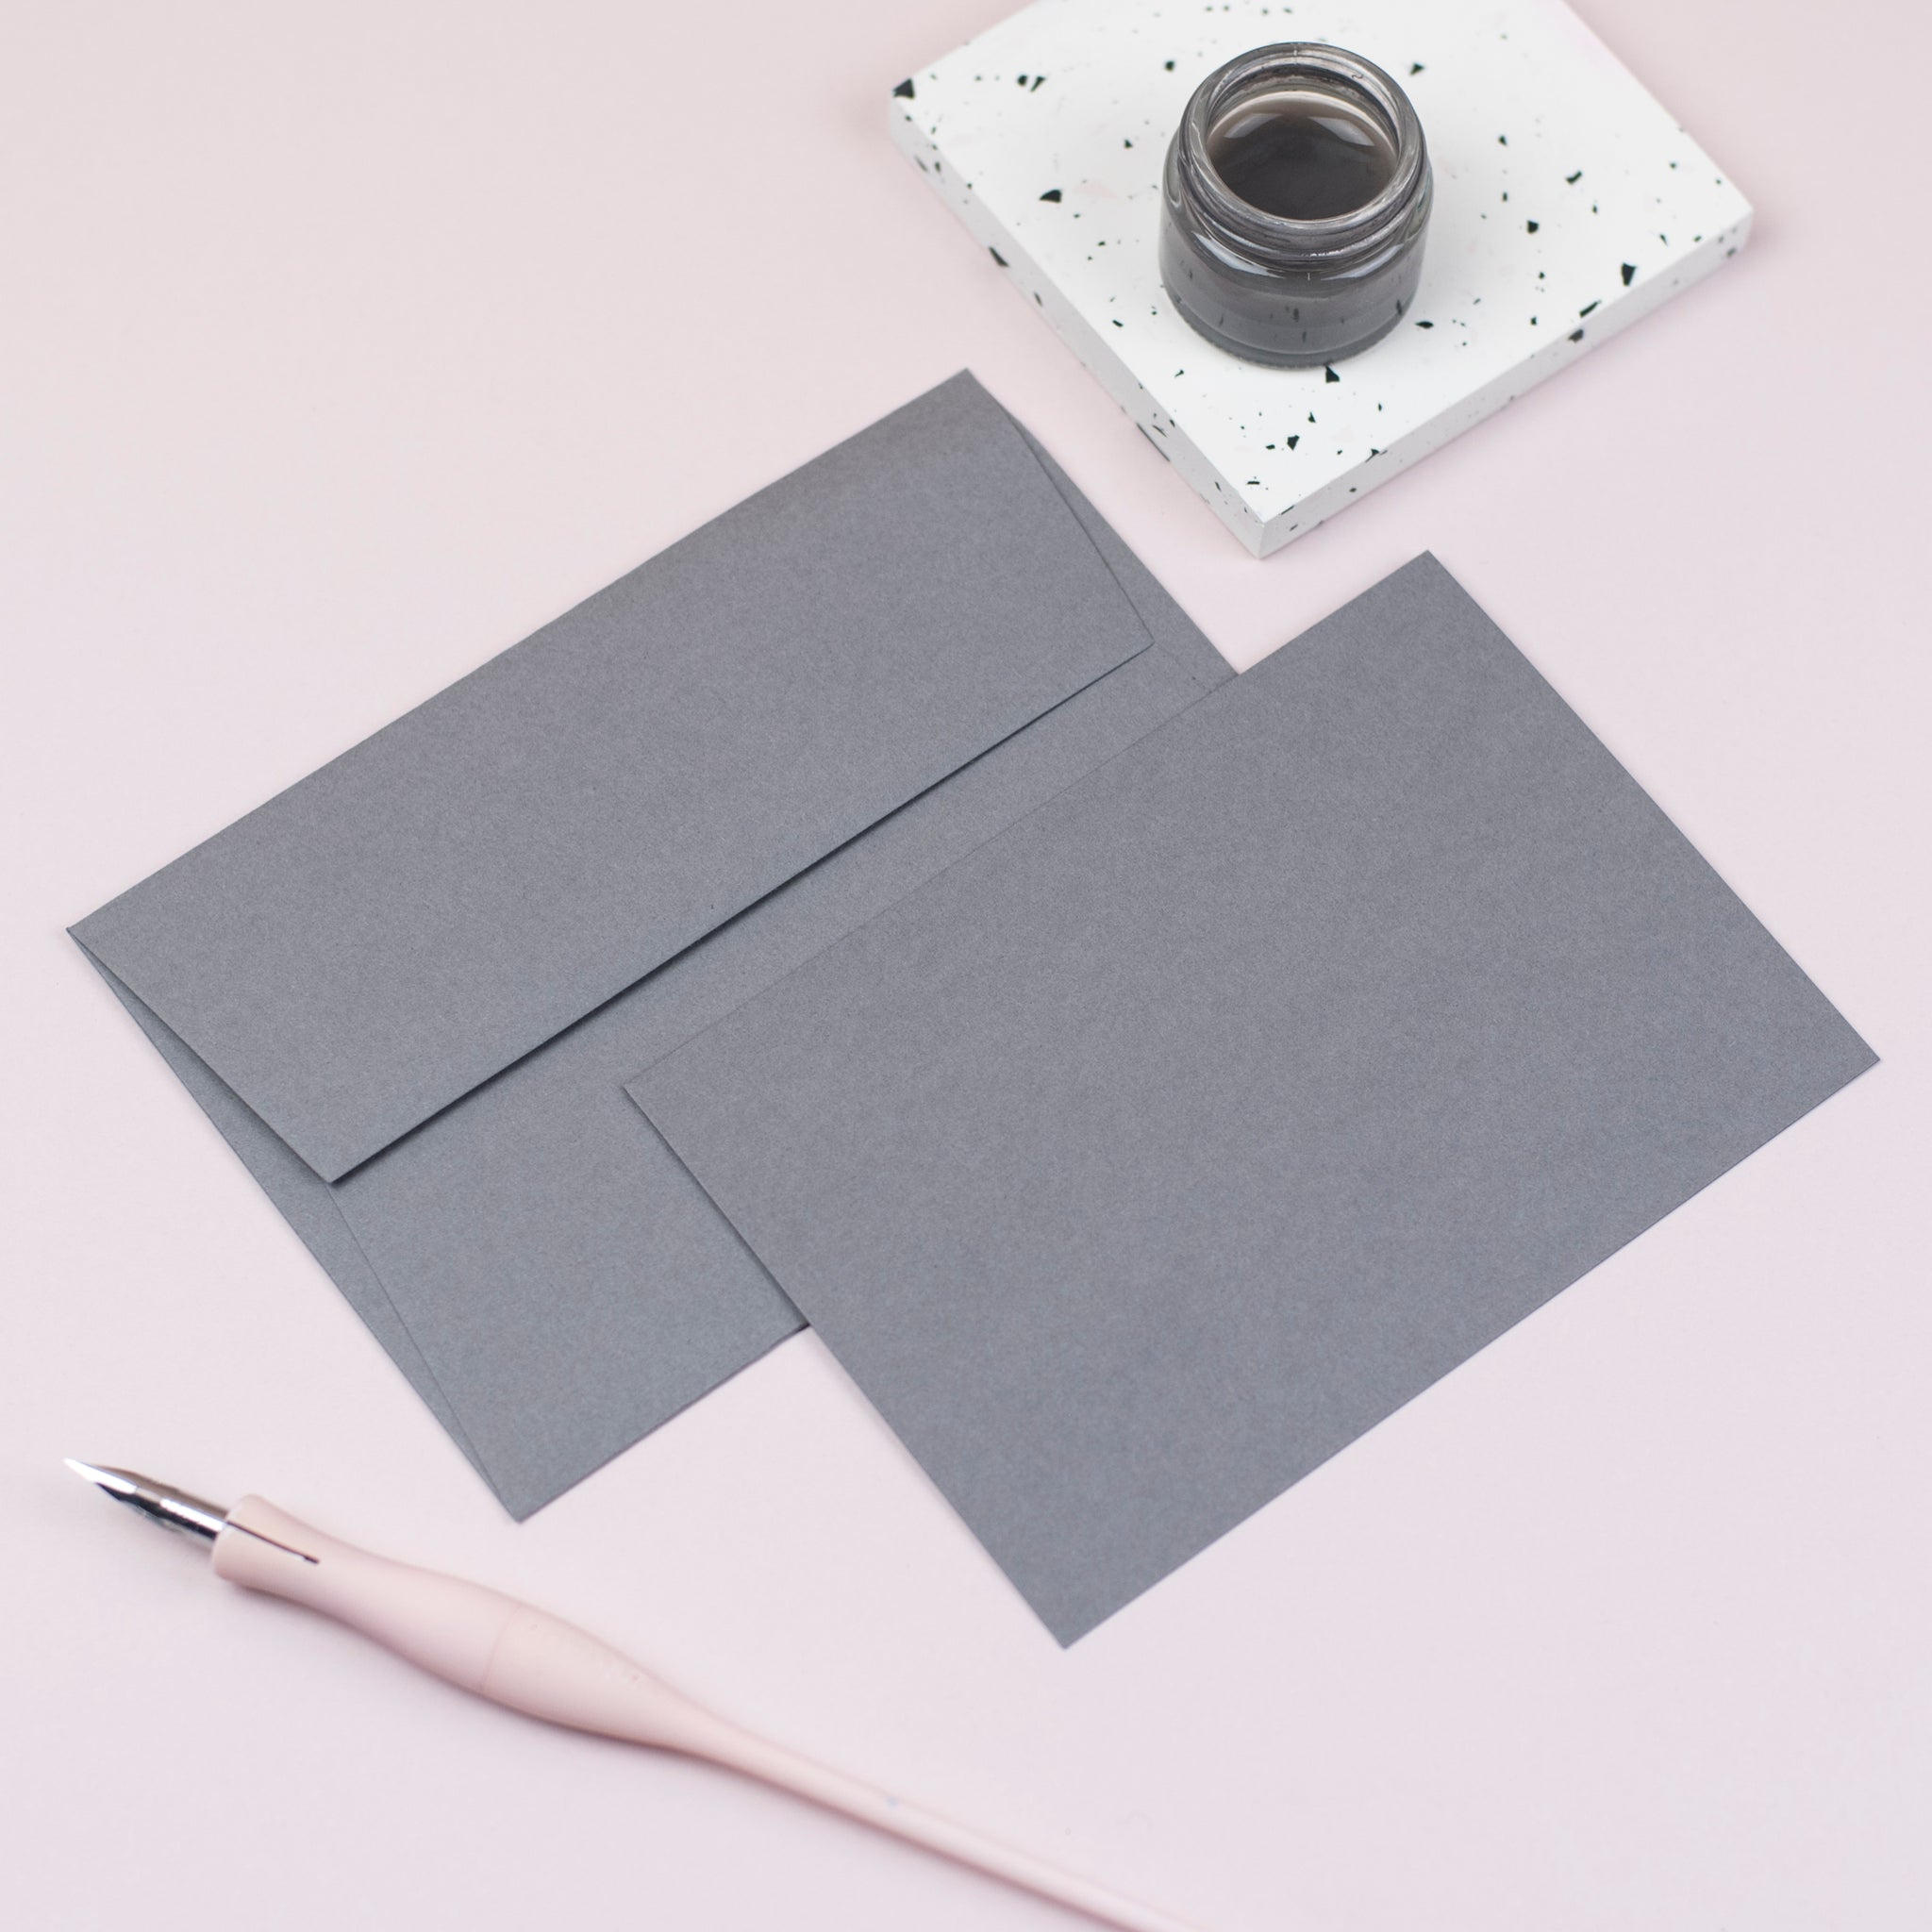 Luxury smoke notecards and envelopes